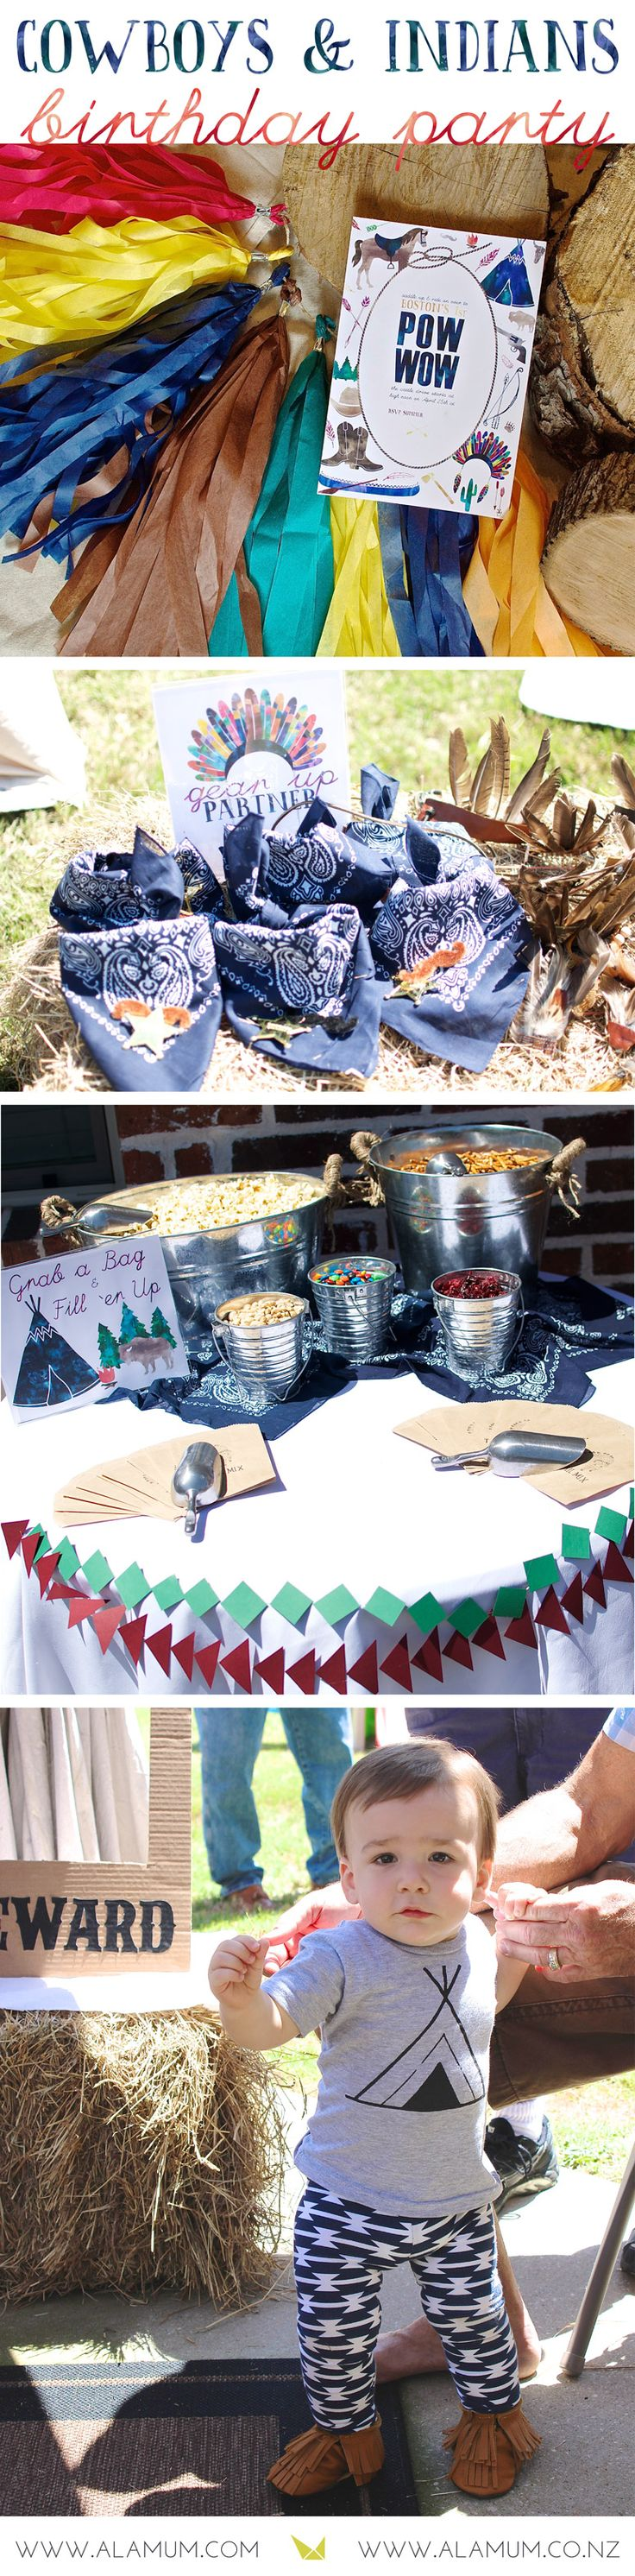 Cowboys and Indians party for Boy 1st Birthday Party. DIY Pow-Wow Themed Birthday Party for the boy who loves playing cowboys and Indians! Full decor includes drink station, creative party desserts display, unique and fun photo booth setup with props, plus fun take on cake smash with a pie smash instead! |  www.alamum.com | www.alamum.co.nz